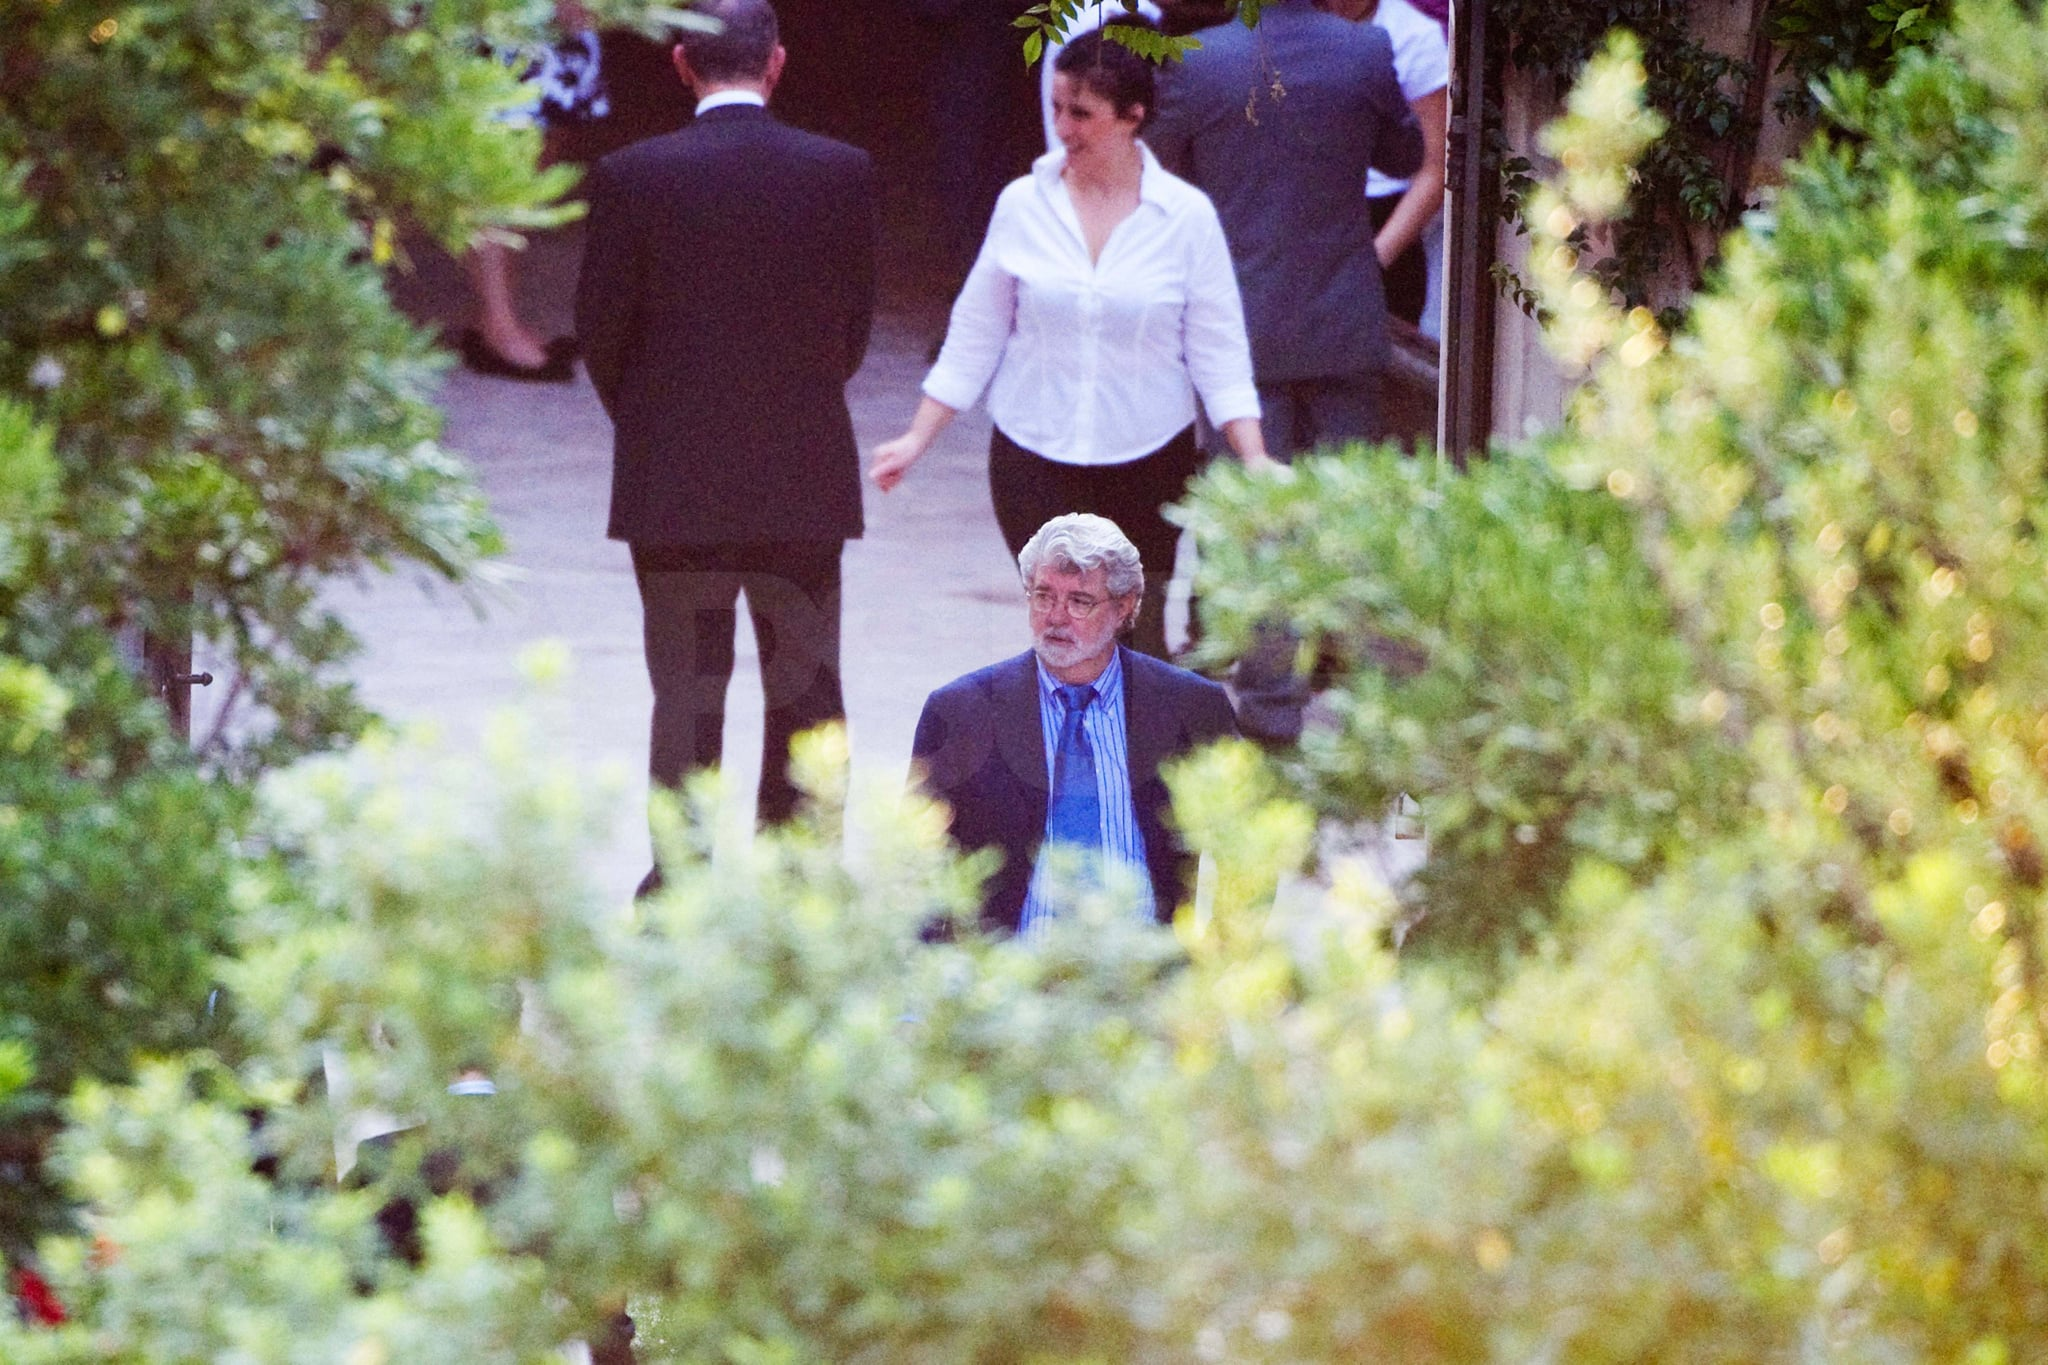 George Lucas was on hand for the happy event.